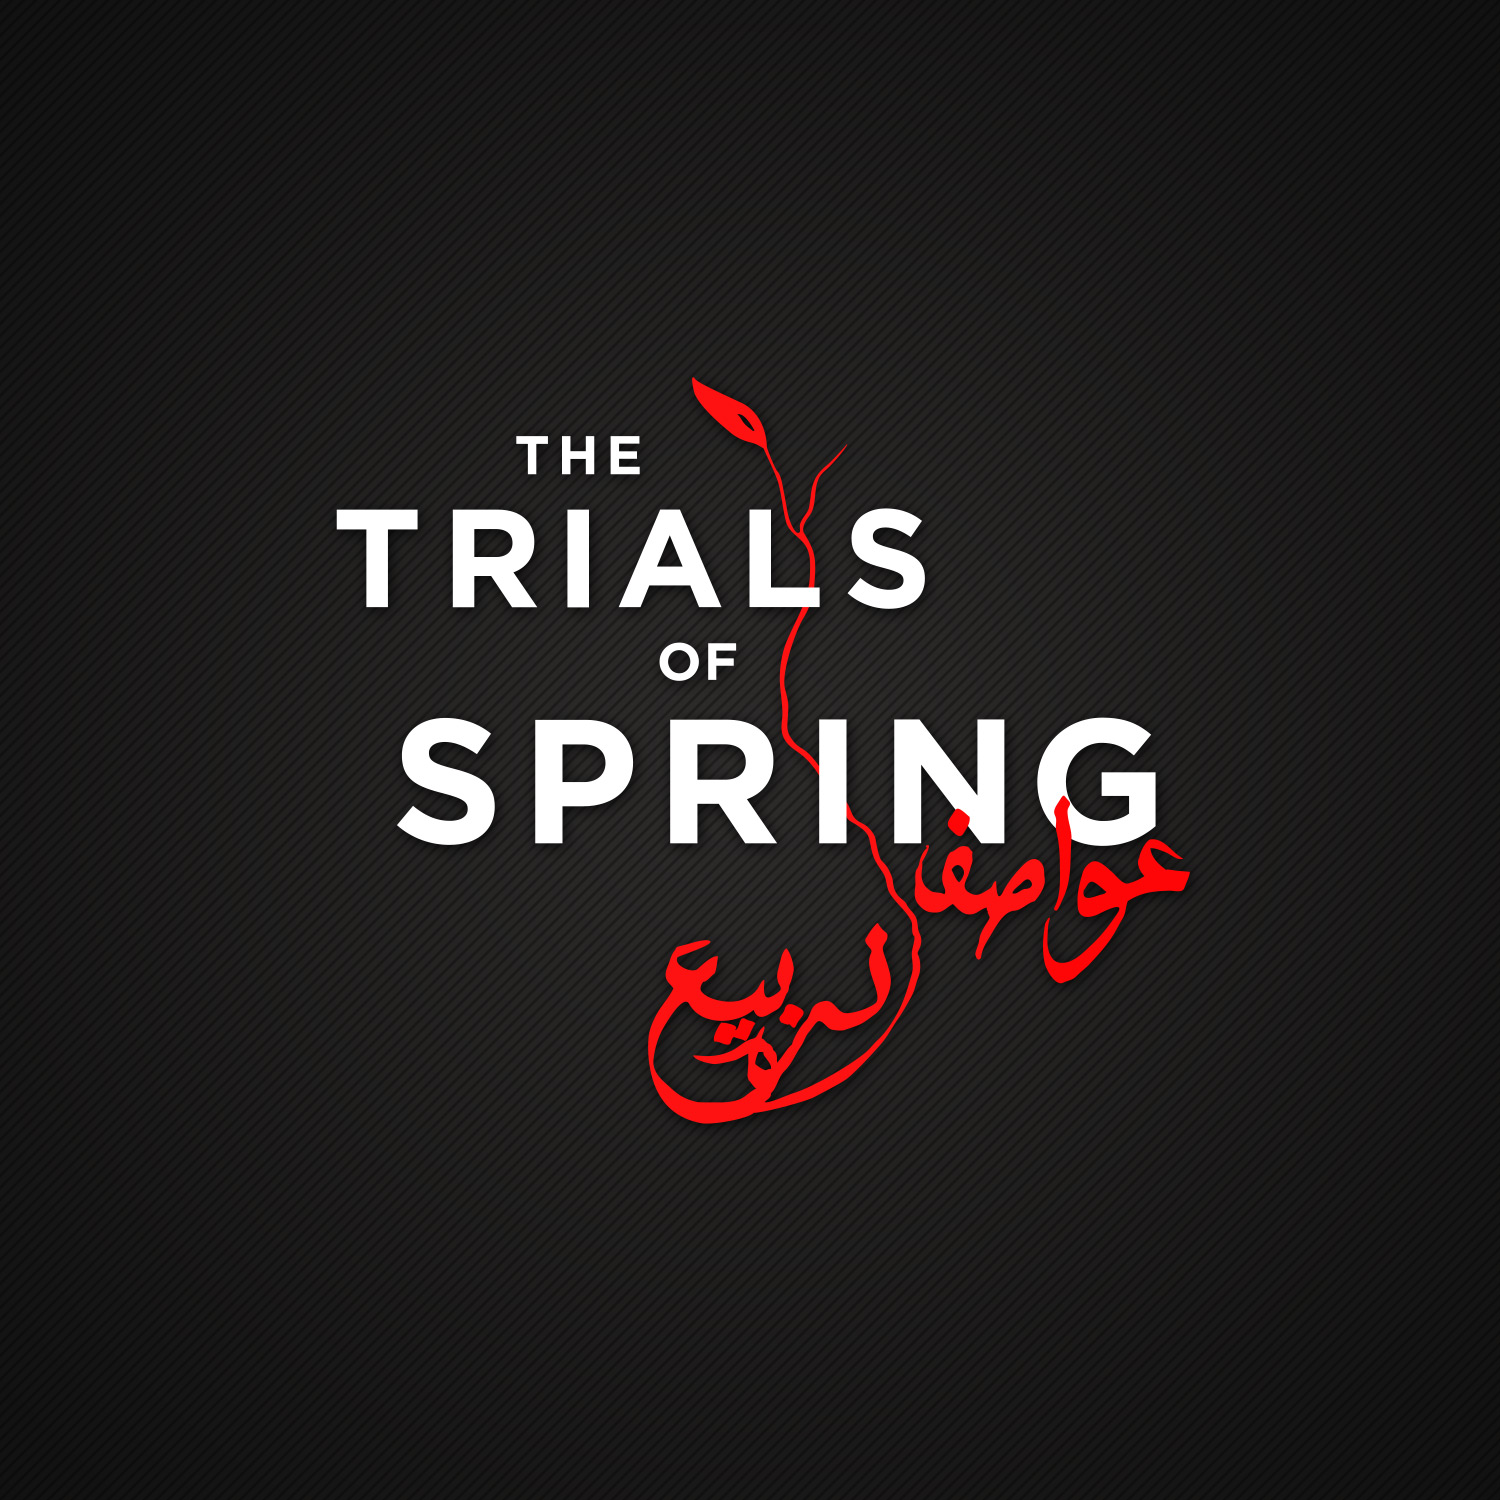 The Trials of Spring - Documentary